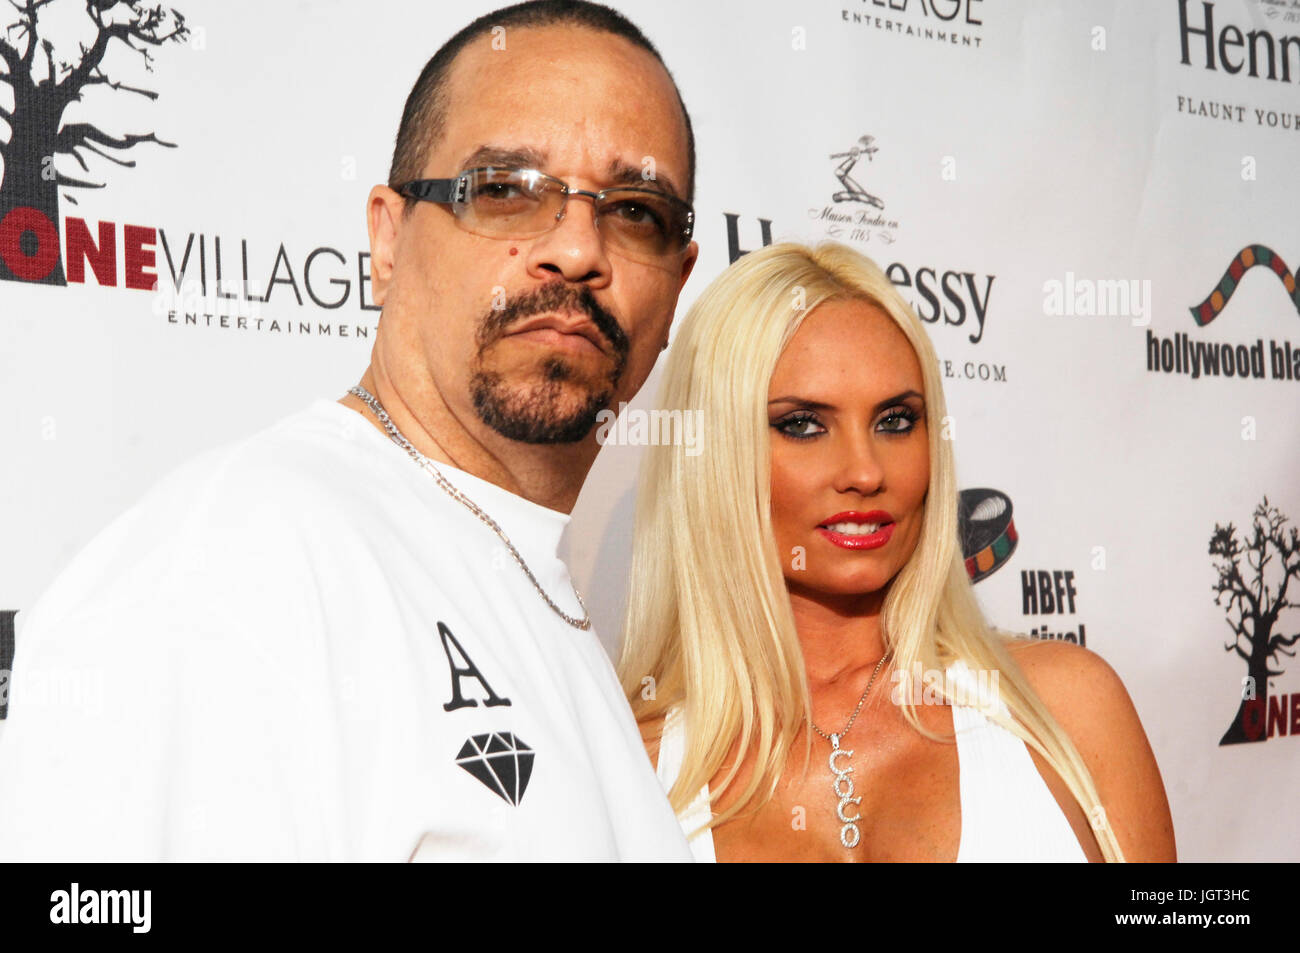 Rapper/actor Ice T,model Coco attends 9th Annual Hollywood Black Film Festival Beverly Hills. - Stock Image